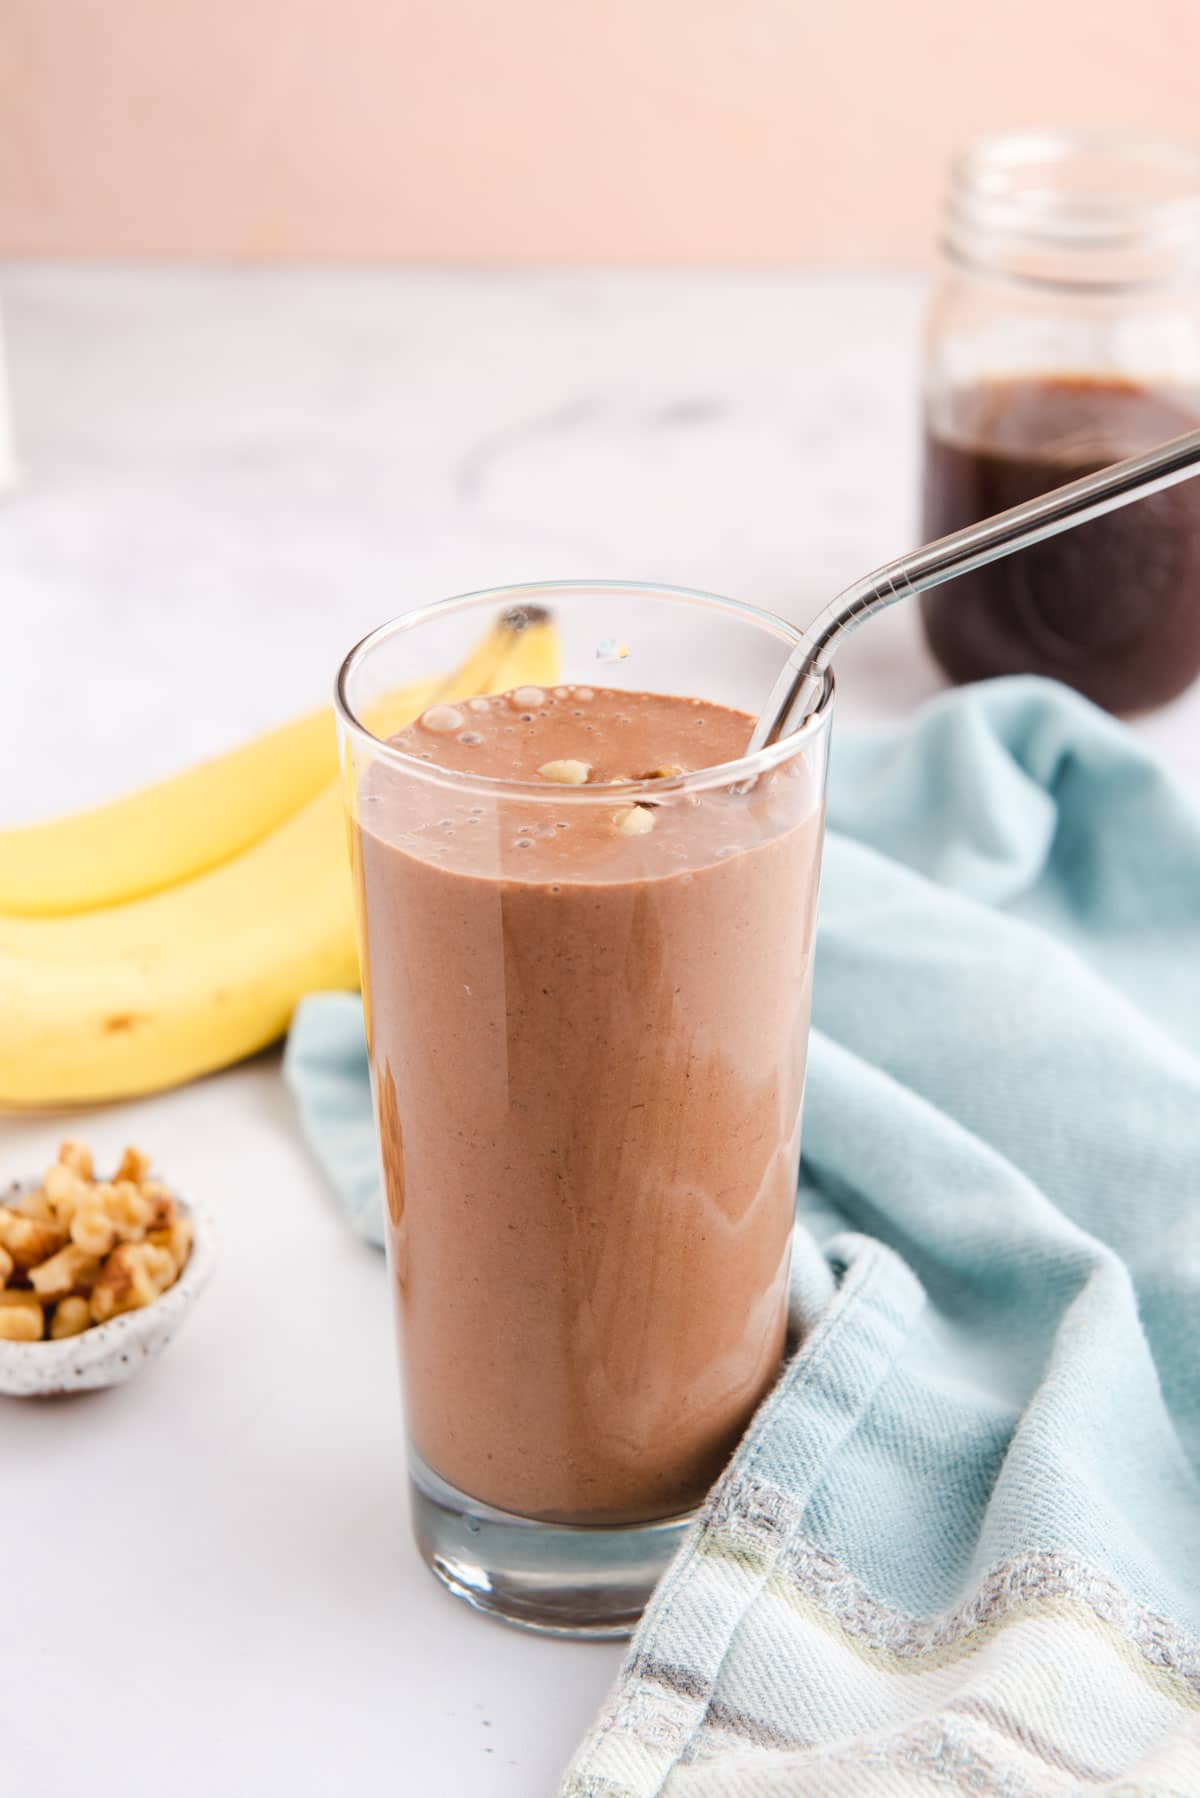 Tall glass of chocolate smoothie next to bananas, nuts, and blue cloth